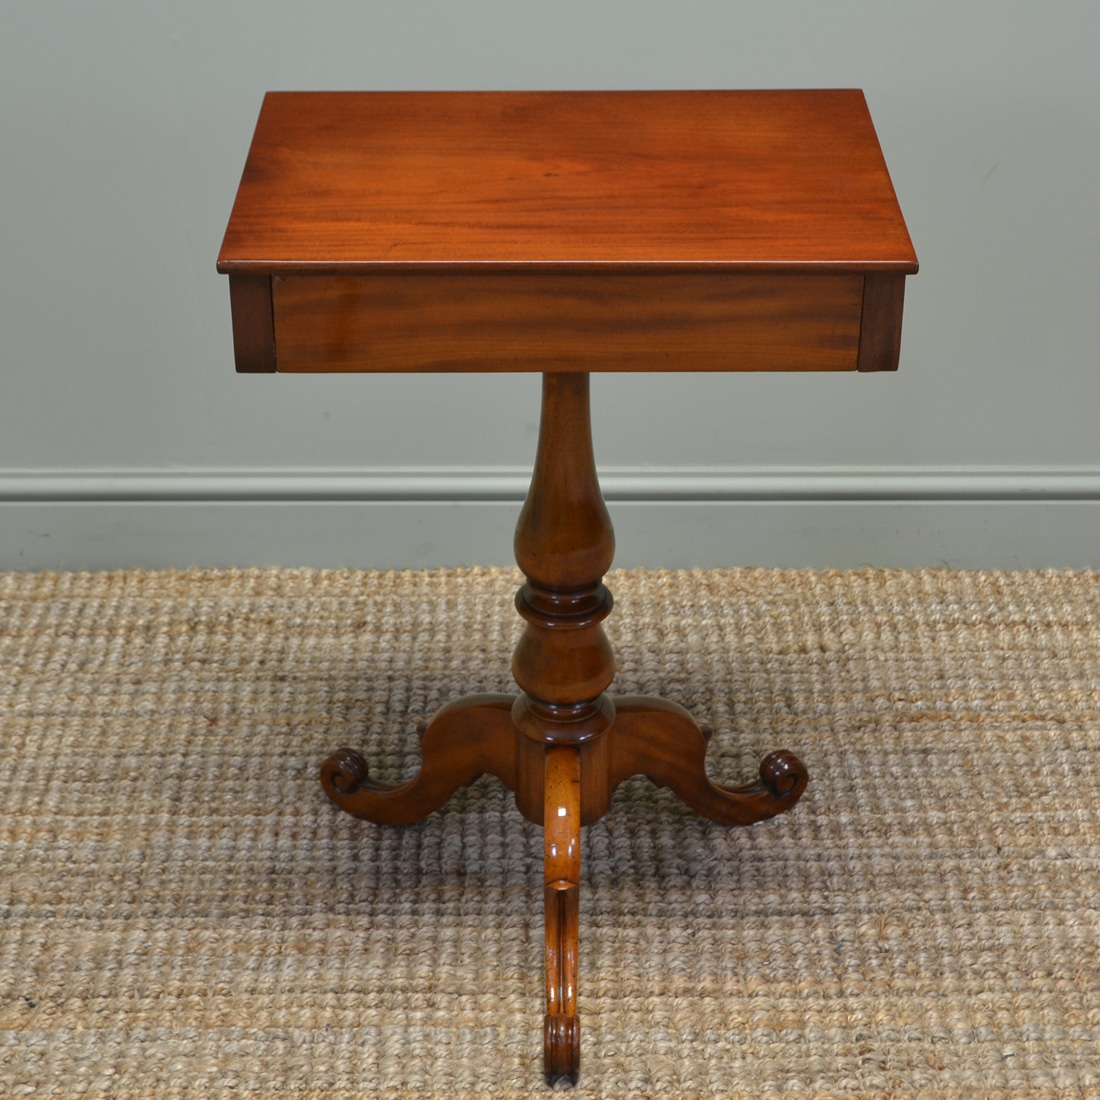 Elegant victorian mahogany antique occasional side lamp table antiques world - Vintage pieces of furniture old times elegance ...